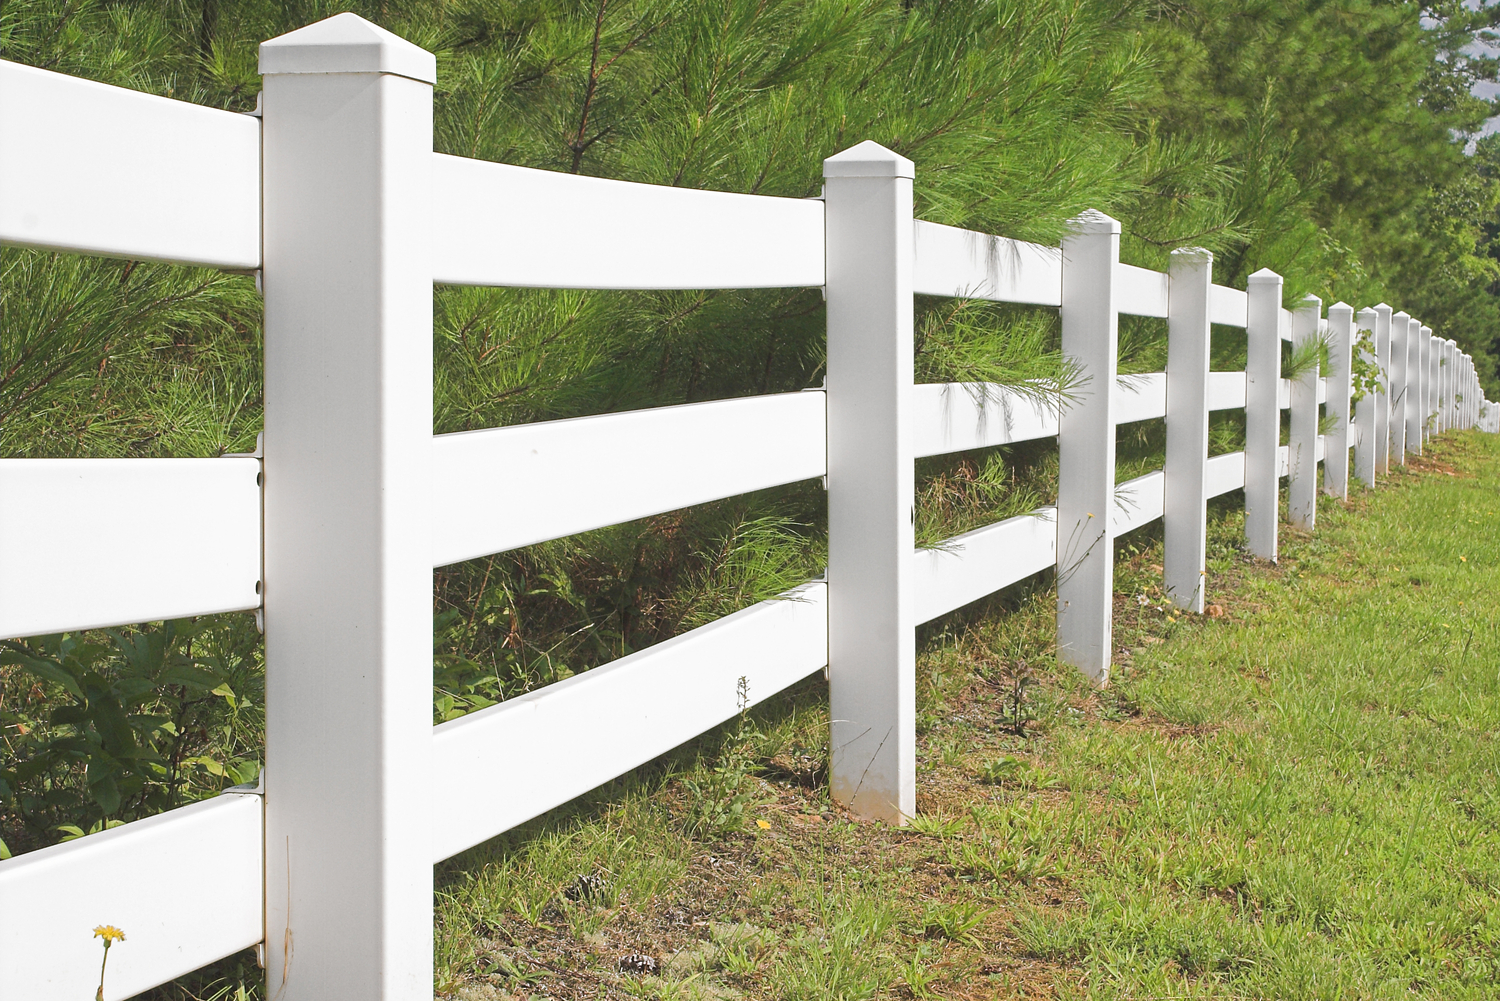 Countryside vinyl fence during day